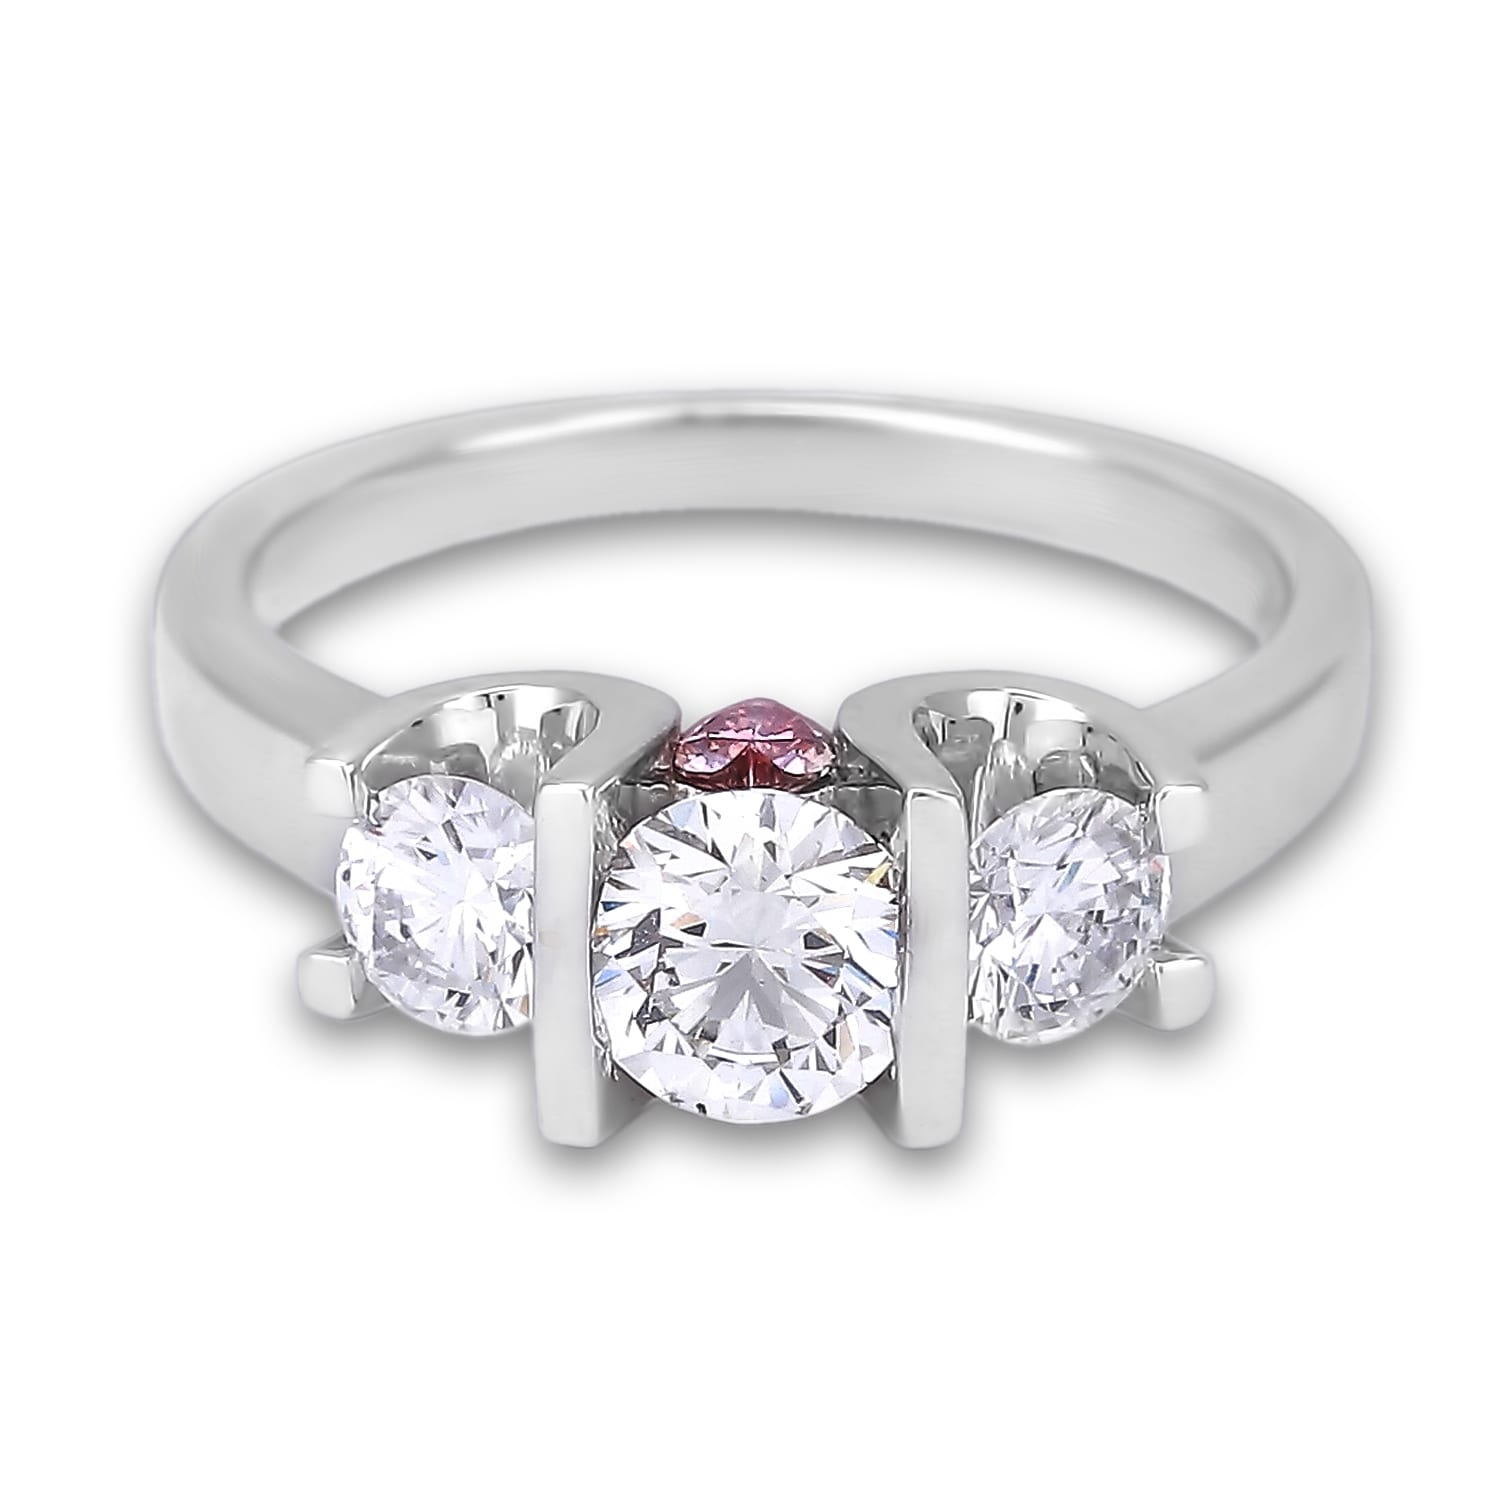 0 45 Carat Forevermark Diamond Trilogy Engagement Ring With Pink Sapphire Accents Lugaro